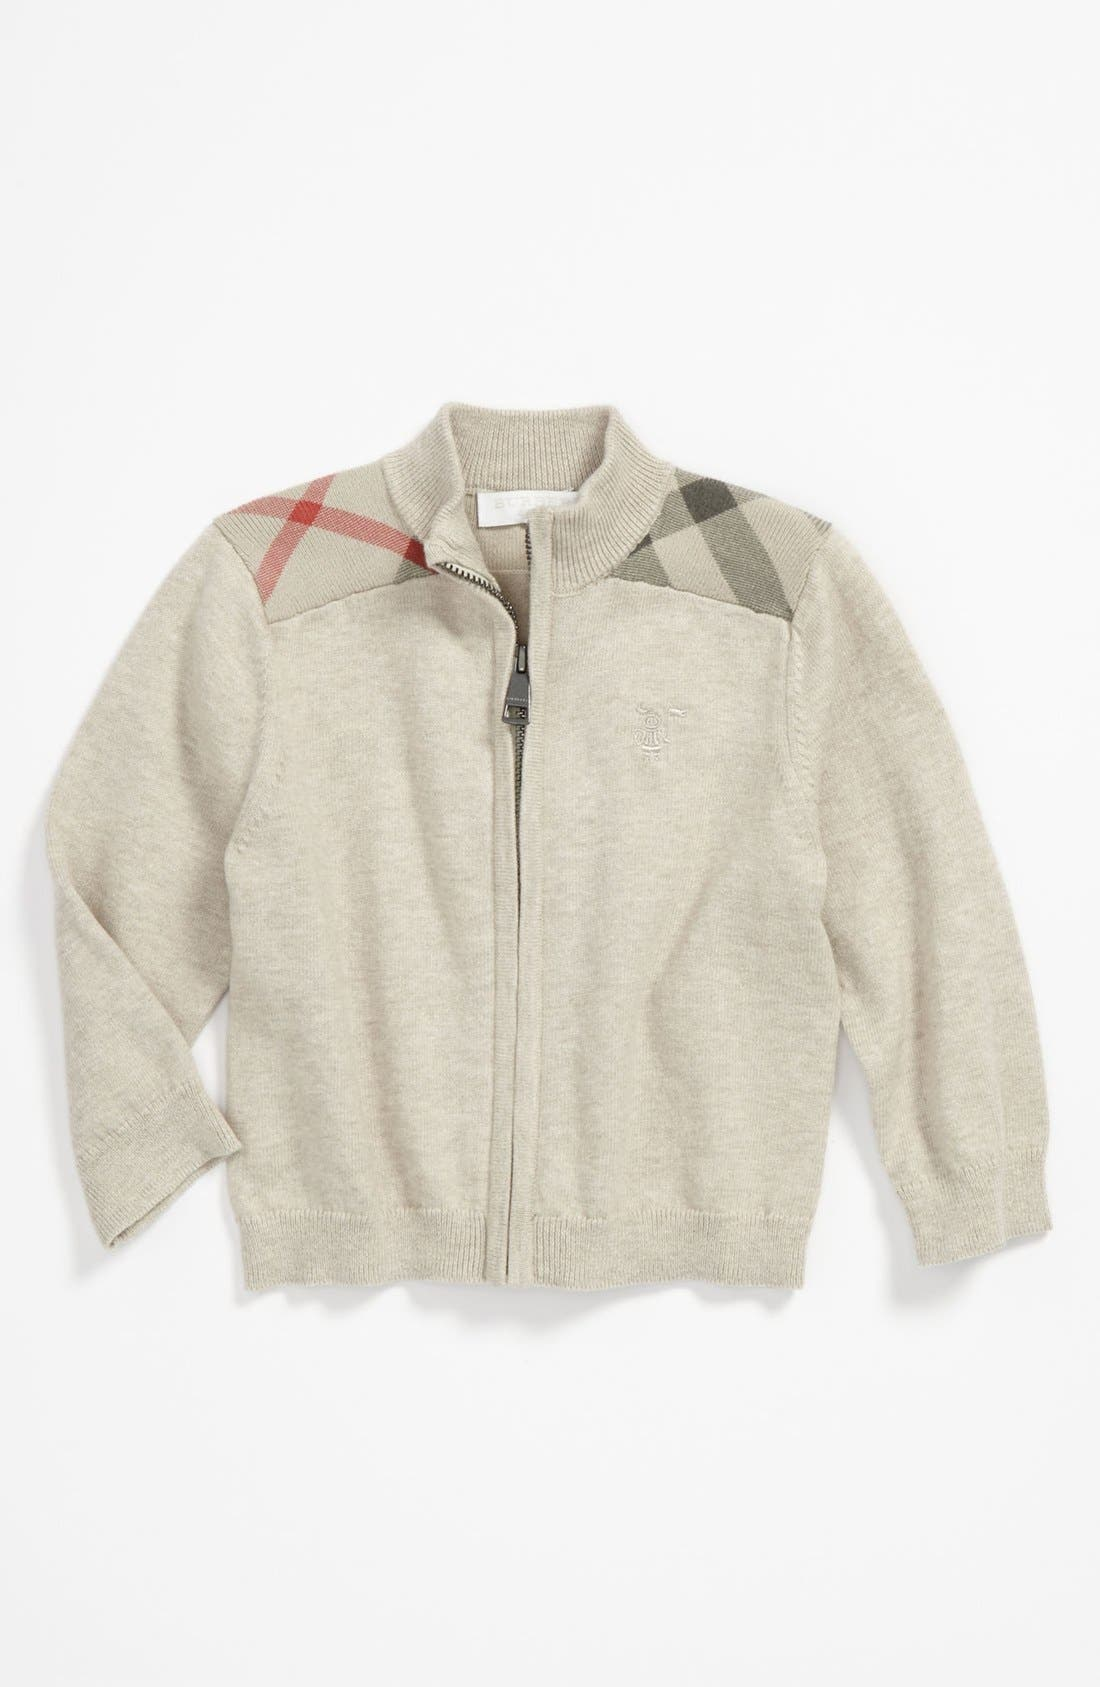 Alternate Image 1 Selected - Burberry 'Christian' Sweater (Toddler)